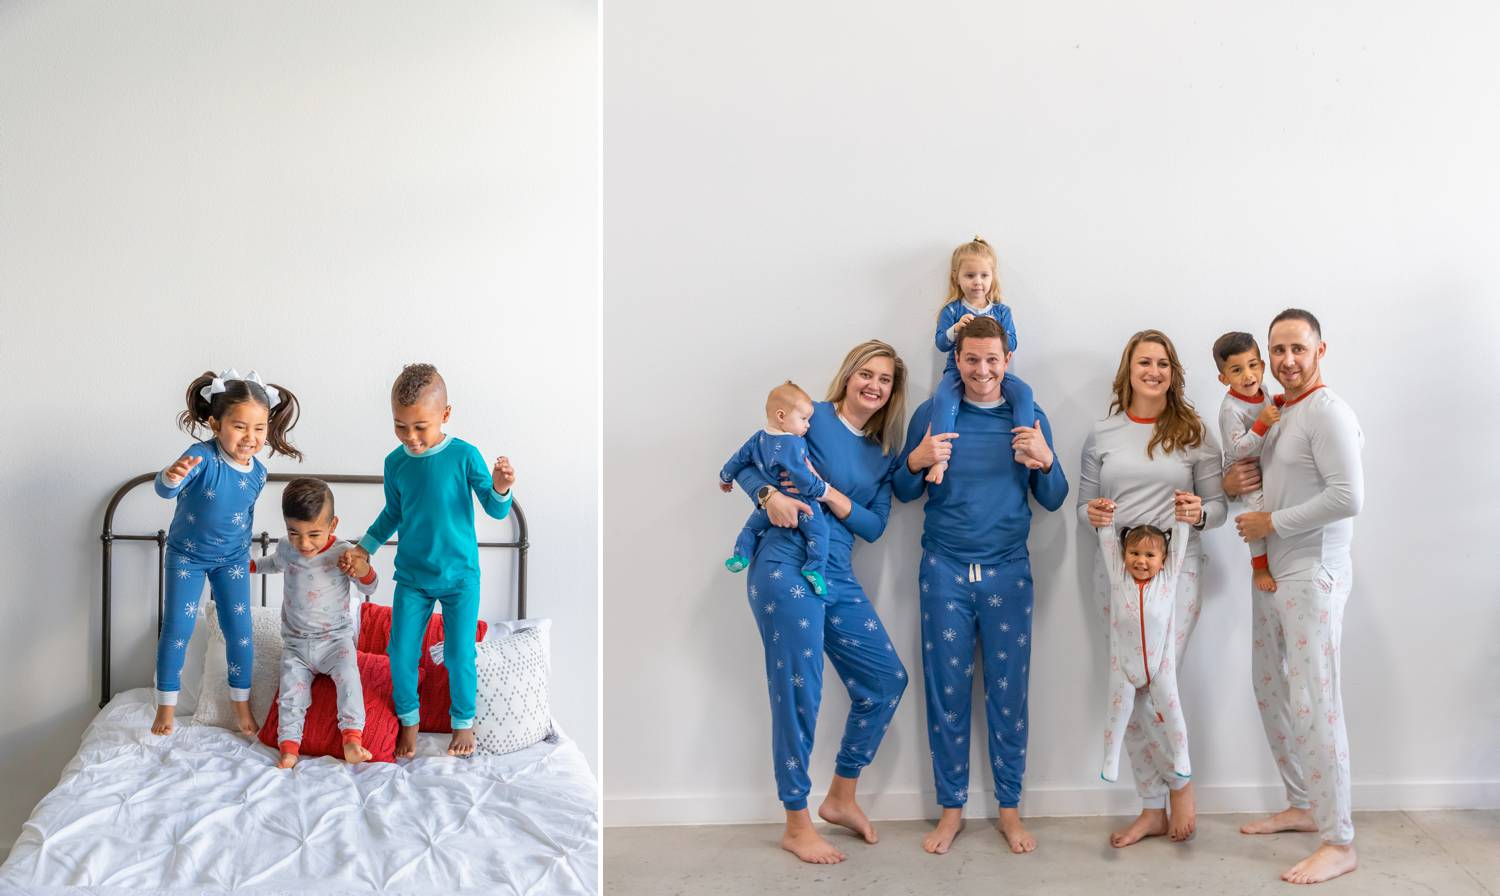 In two photos by Logan Fahey, people wearing pajamas are photographed in a whitewashed studio. In one photo, three PJ-wearing kids jump on a white-draped bed. In the second photo, a blue-wearing family and a silver-wearing family pose side-by-side against a white wall with their kids.Christmas Mini Session: Ideas Families will ADORE!